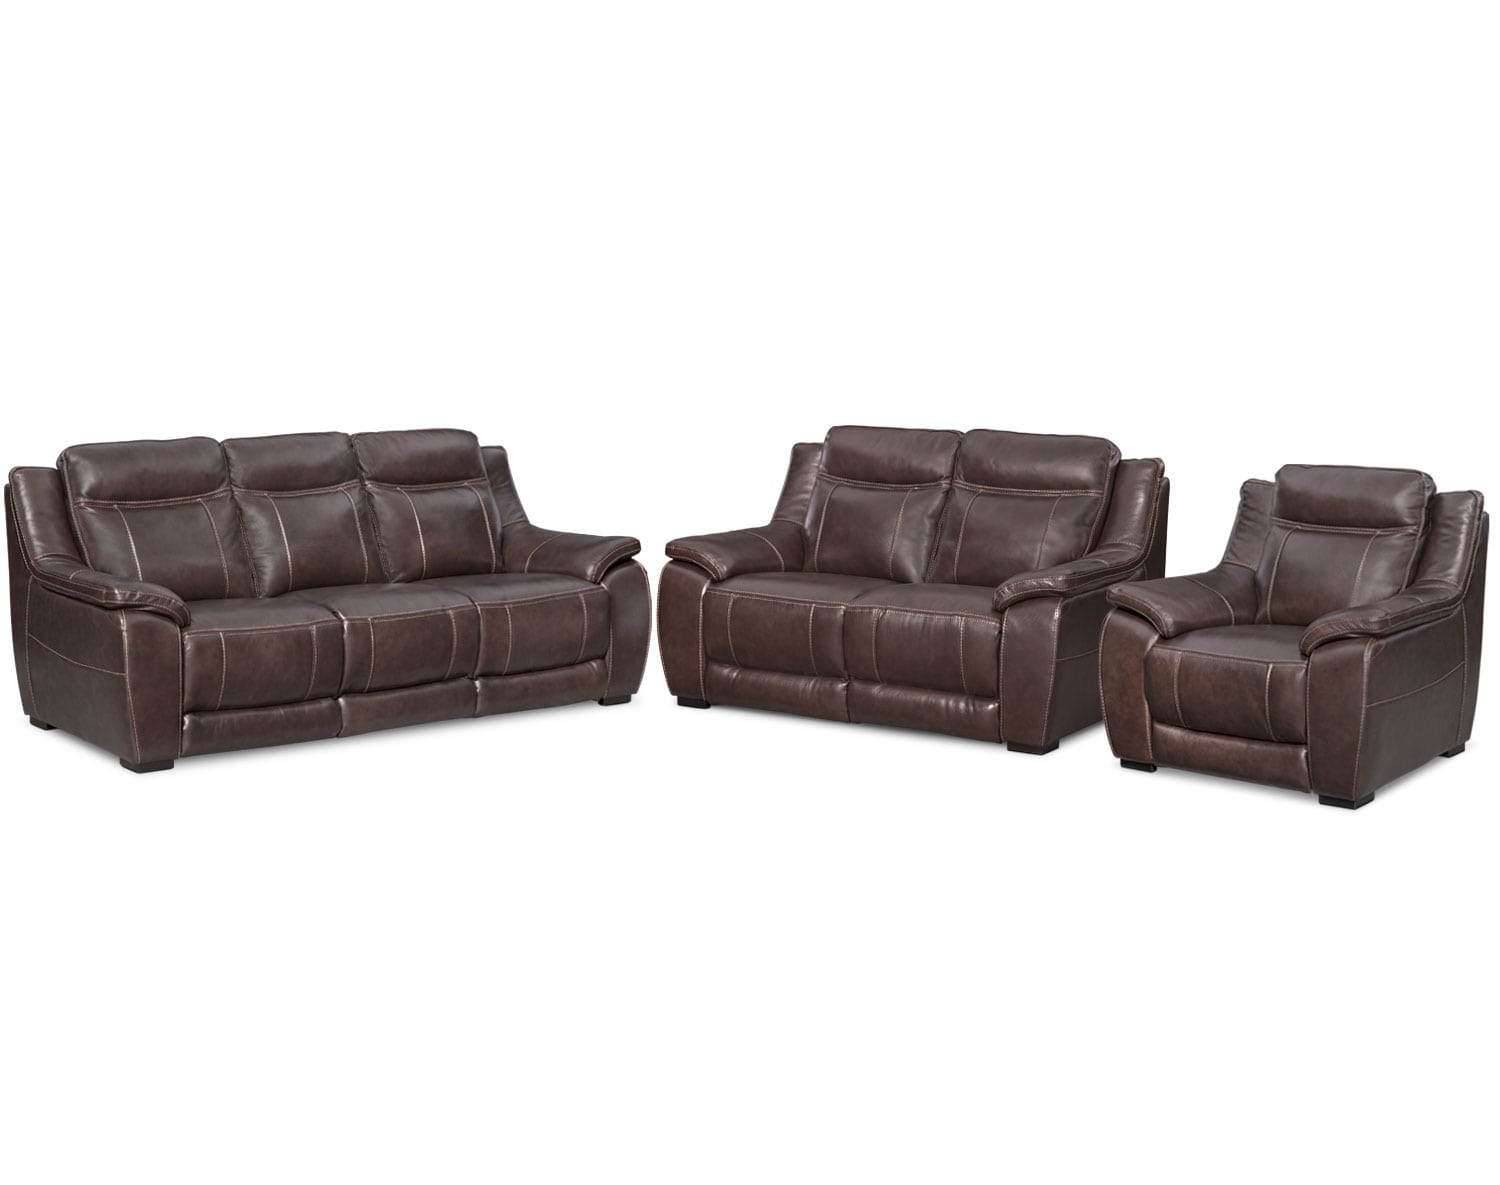 Leather living room furniture - The Lido Collection Brown